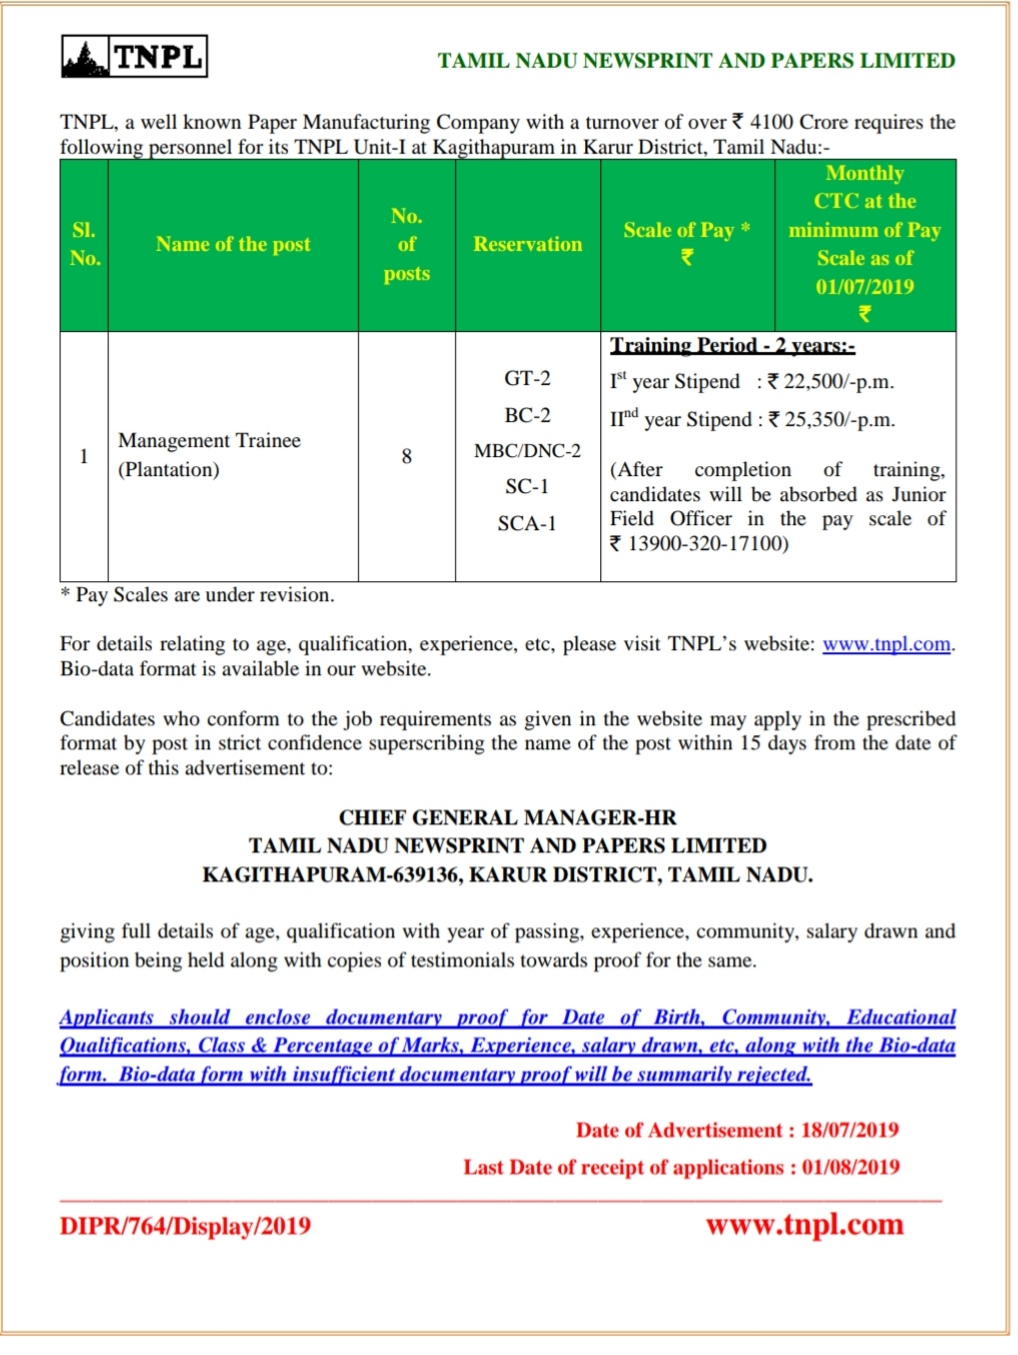 TNPL Management Trainee (Plantation) Vacancy 2019 Tamil Nadu Newsprint And Papers Limited